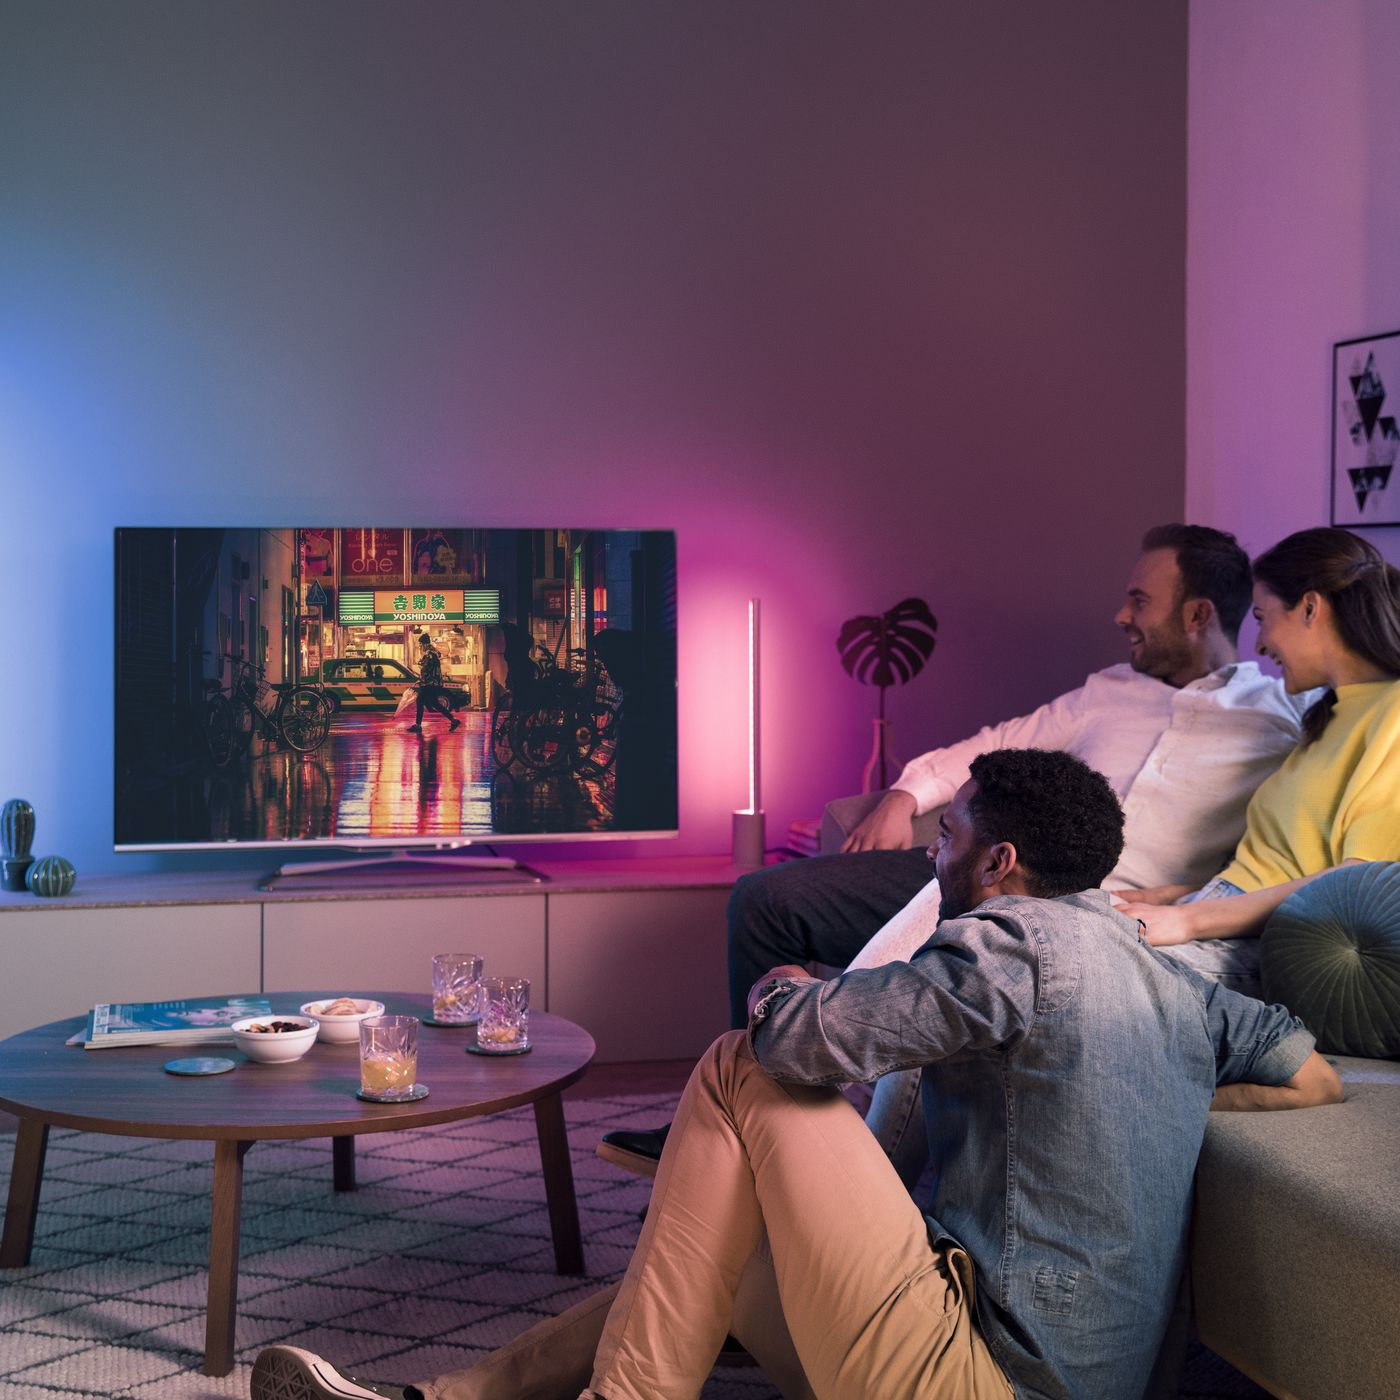 The Latest Philips Hue Lights Project Color Onto Walls